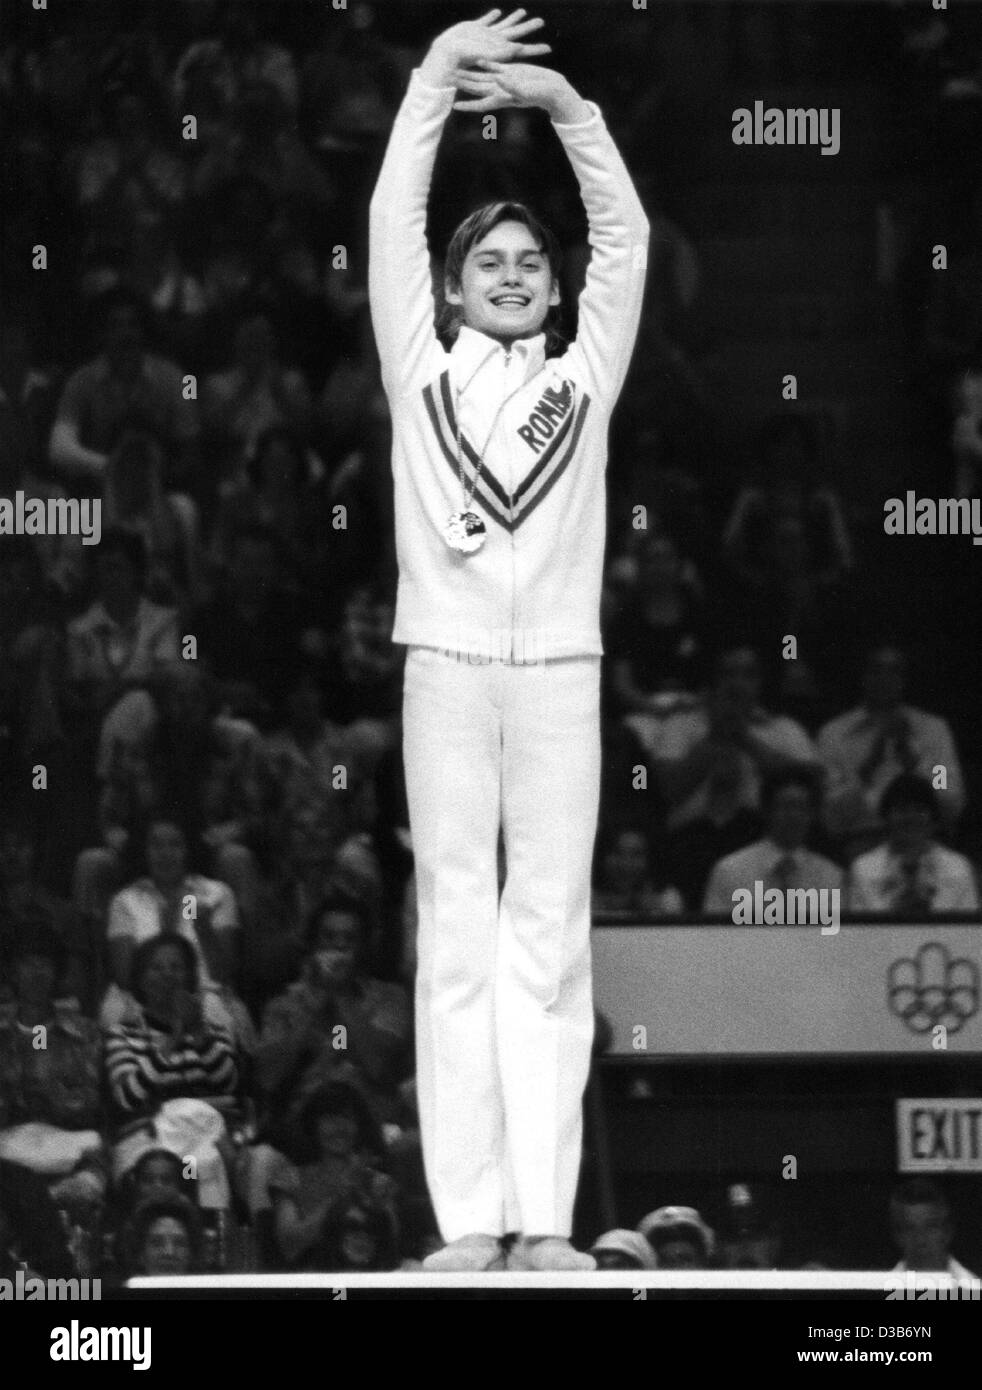 dpa files romanian gymnast nadia comaneci jubilates on the podium after winning the